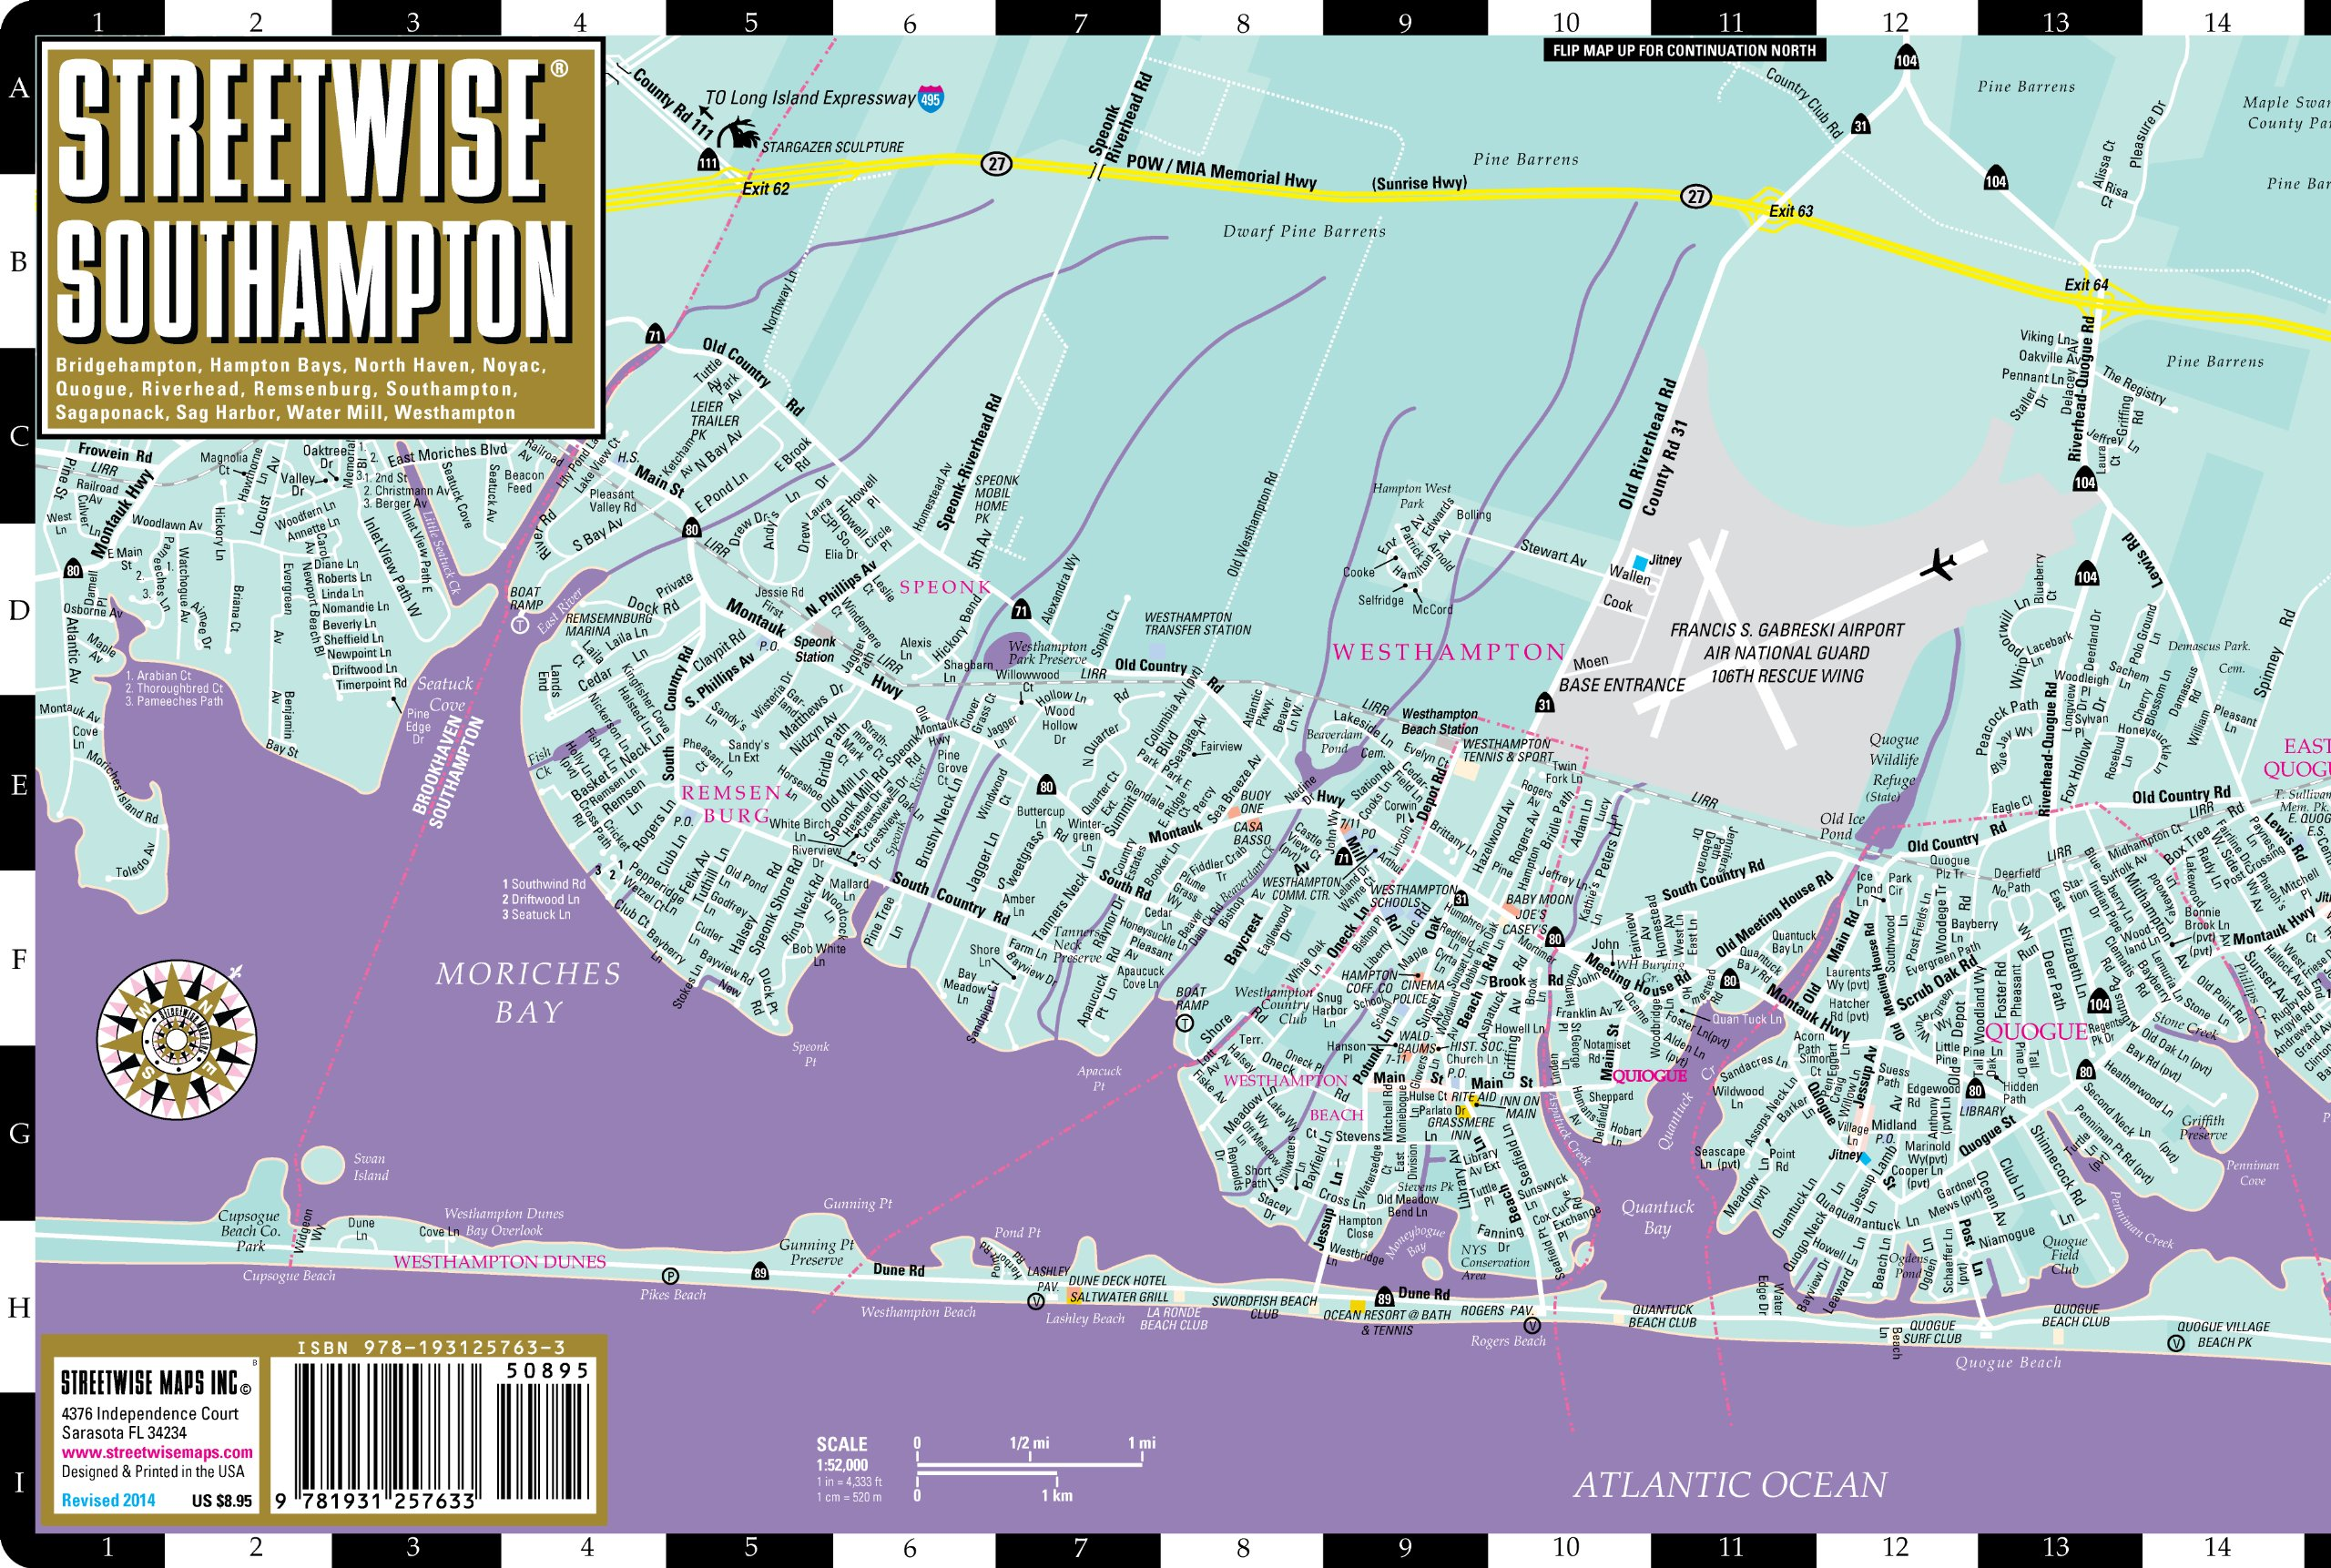 Streetwise Southampton Map - Laminated City Street Map of ... on britannia map, parkland map, hudson valley area map, montauk map, oakridge map, fire island, huntington map, long island, woodlands map, sag harbor, jill flint, new york map, brentwood map, harlem map, water mill, sundance map, new rochelle map, east hampton, southampton map, somerset map, langley afb housing map, richmond map, bayview map, soho map, long island map, fire island map,